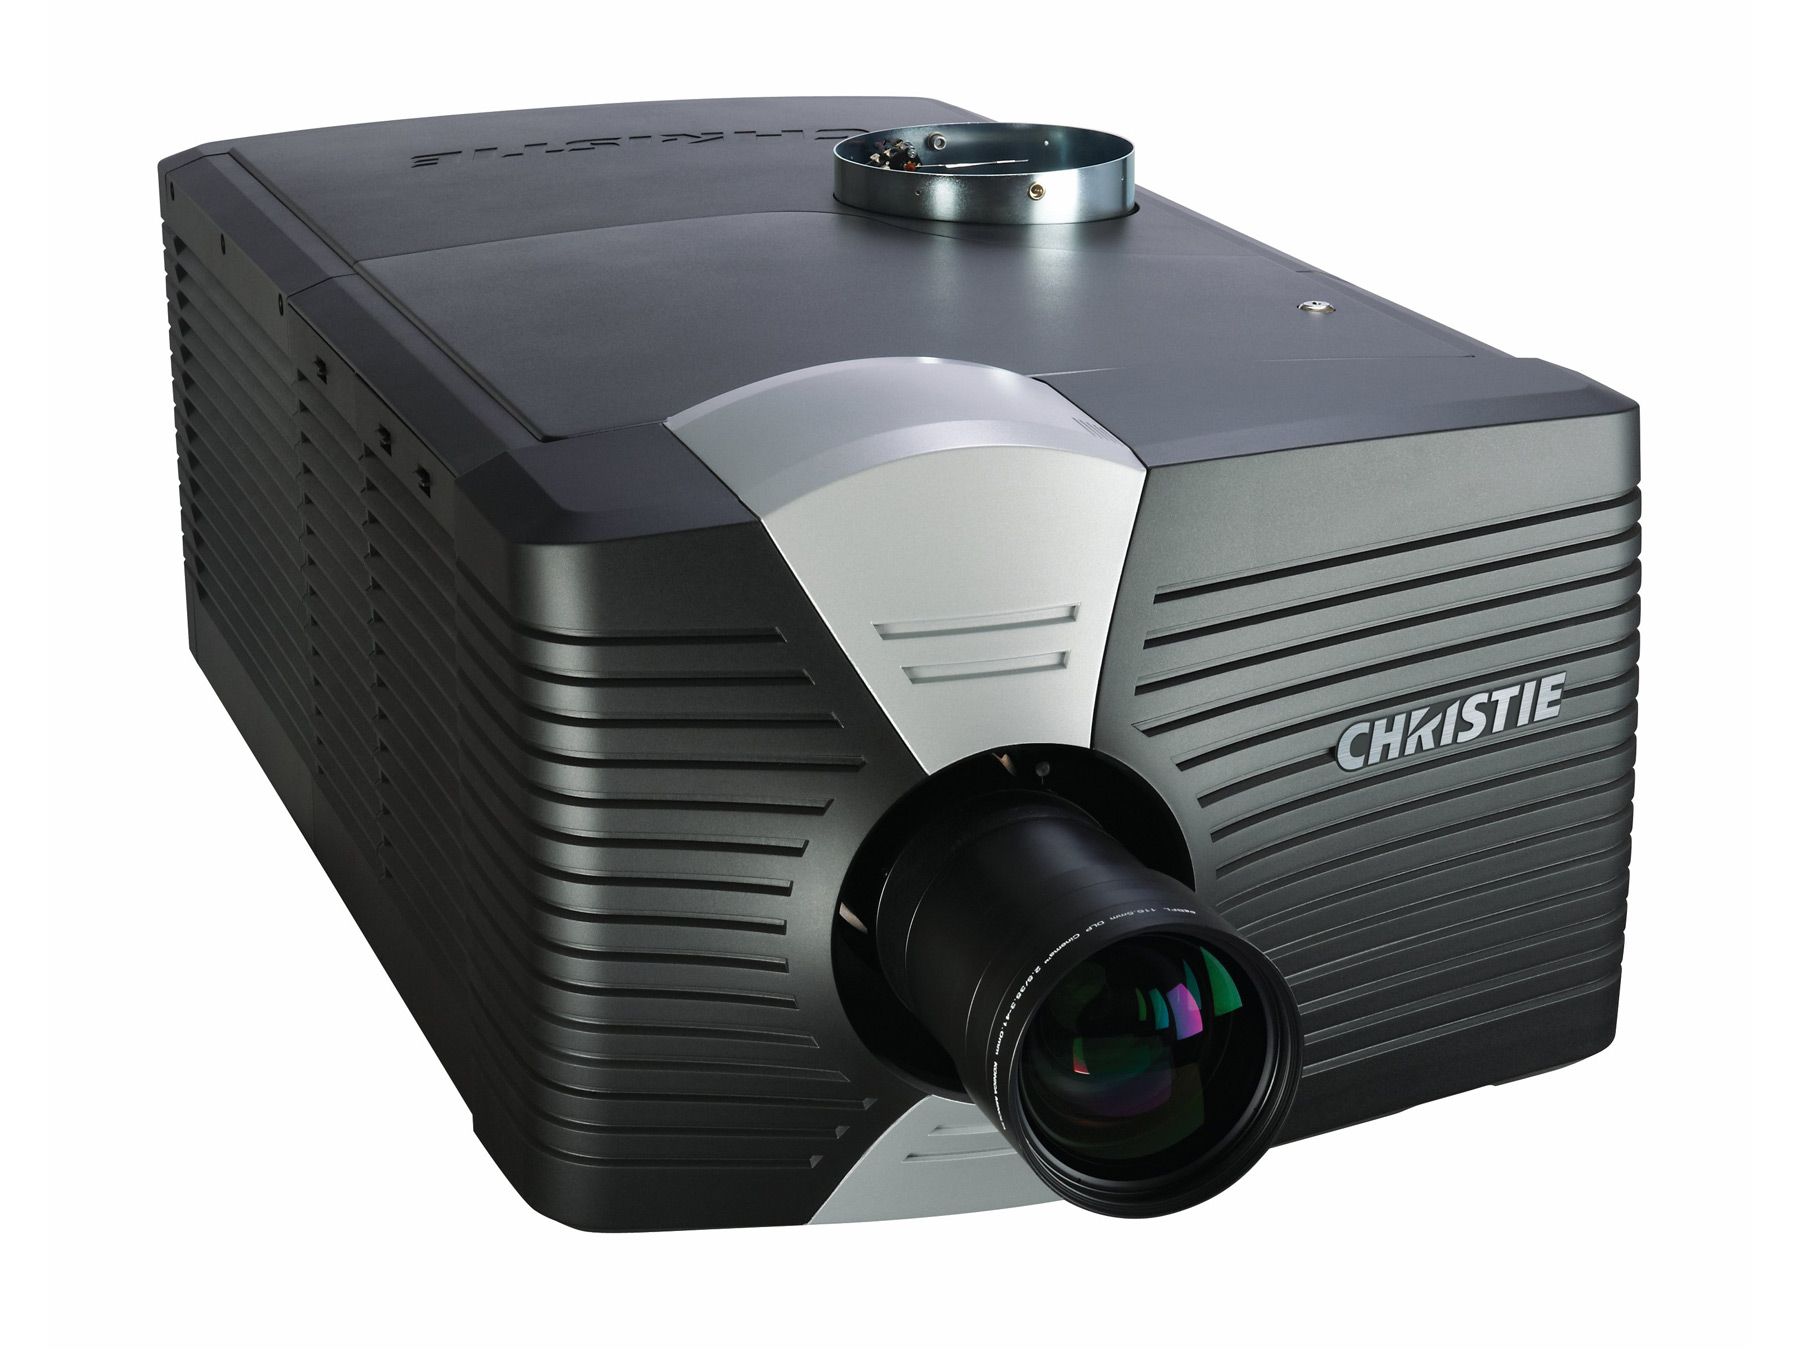 /globalassets/.catalog/products/images/christie-cp4230/gallery/digital-cinema-projector-4k-image-5.jpg